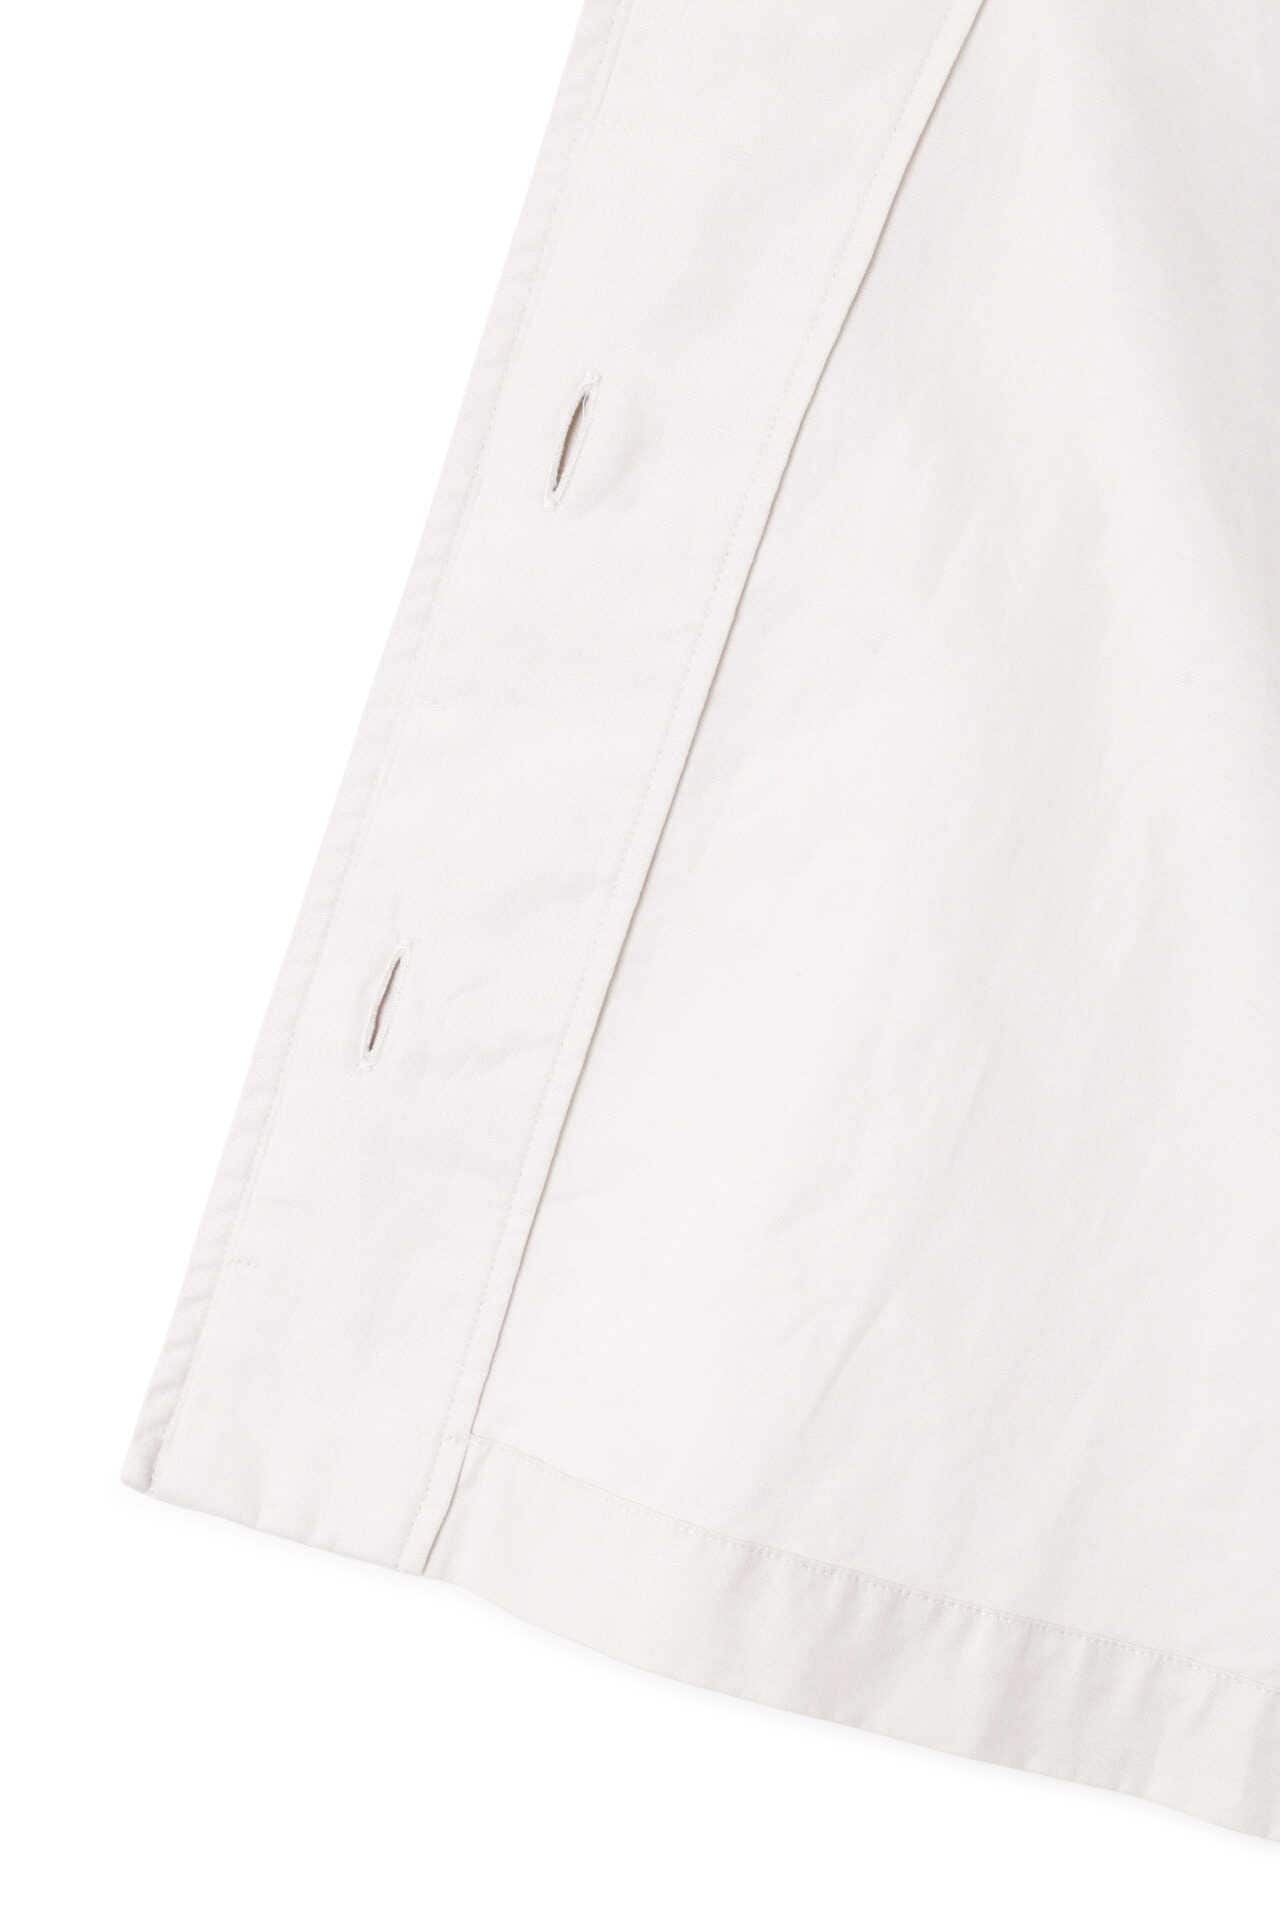 COTTON LINEN TWILL7